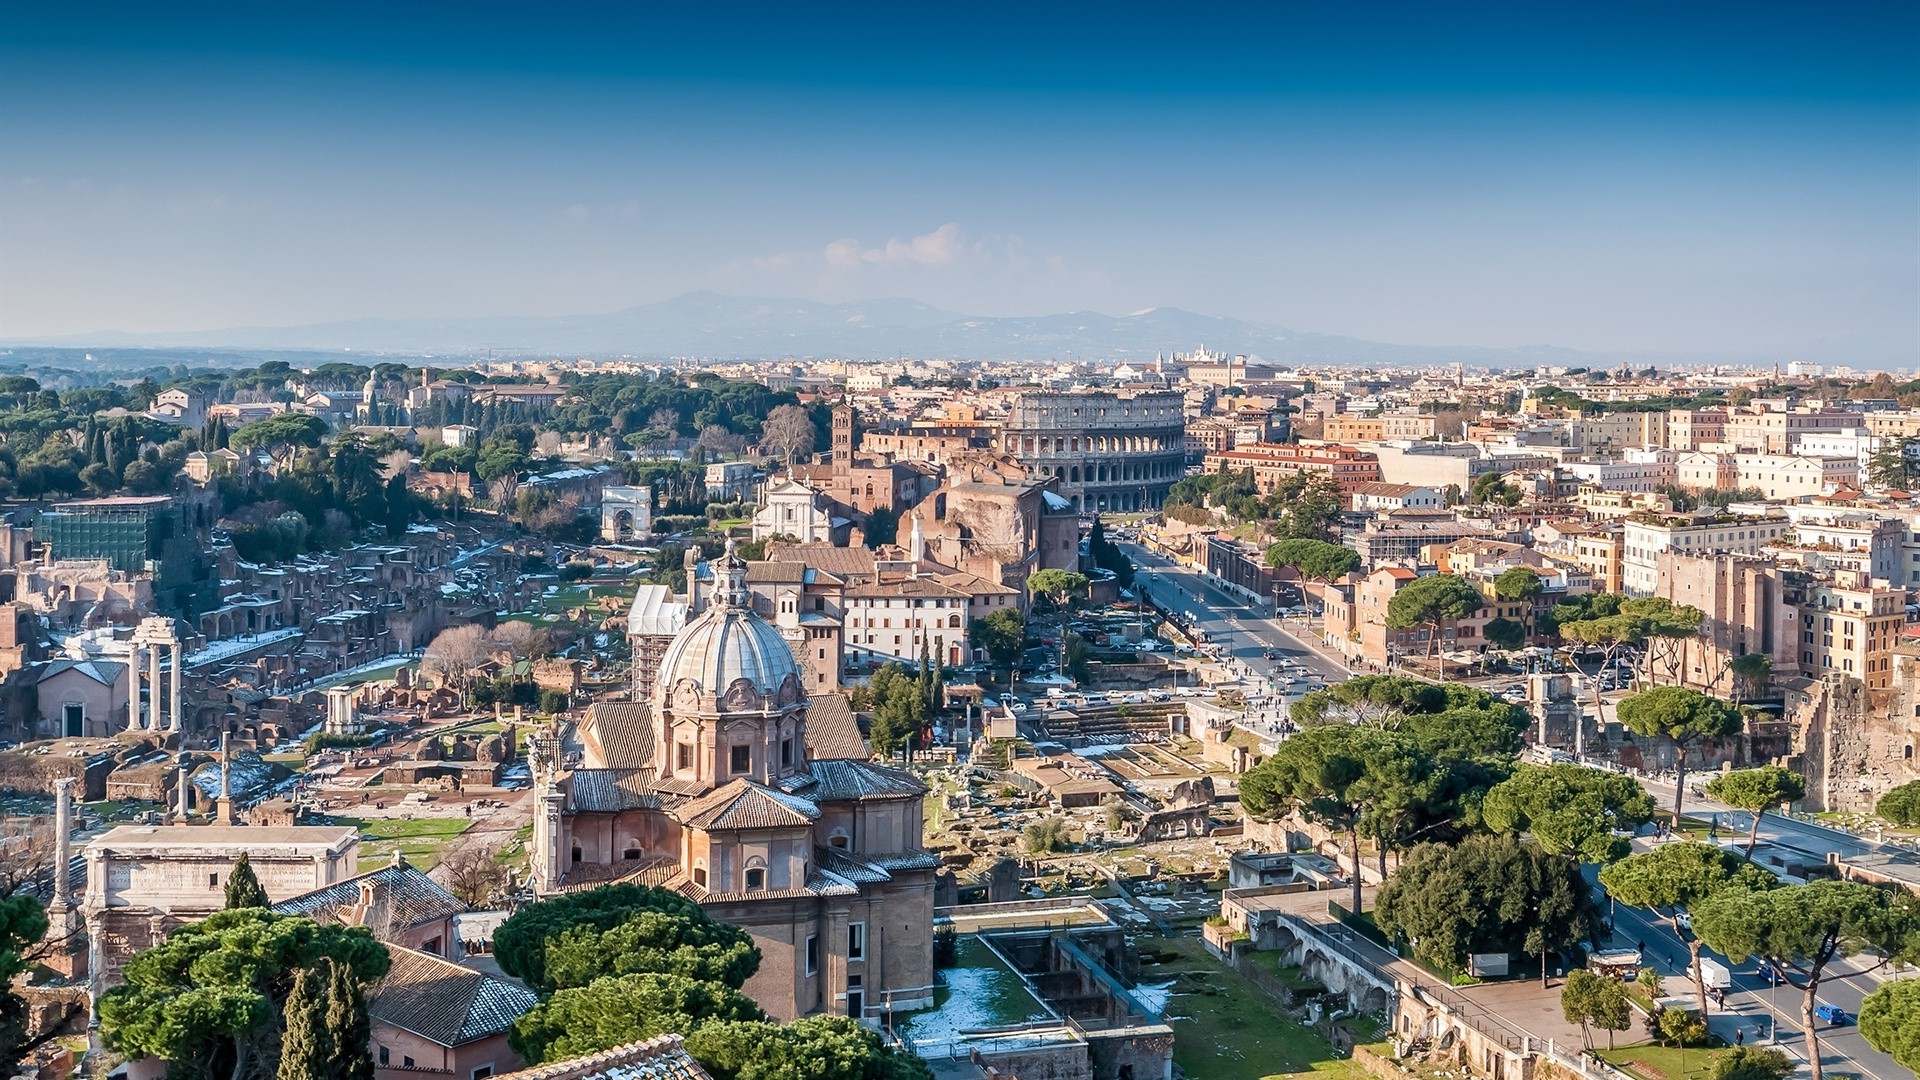 city architecture cityscape town church travel skyline sight panorama house roof panoramic building urban aerial landmark hill dome cathedral tourism